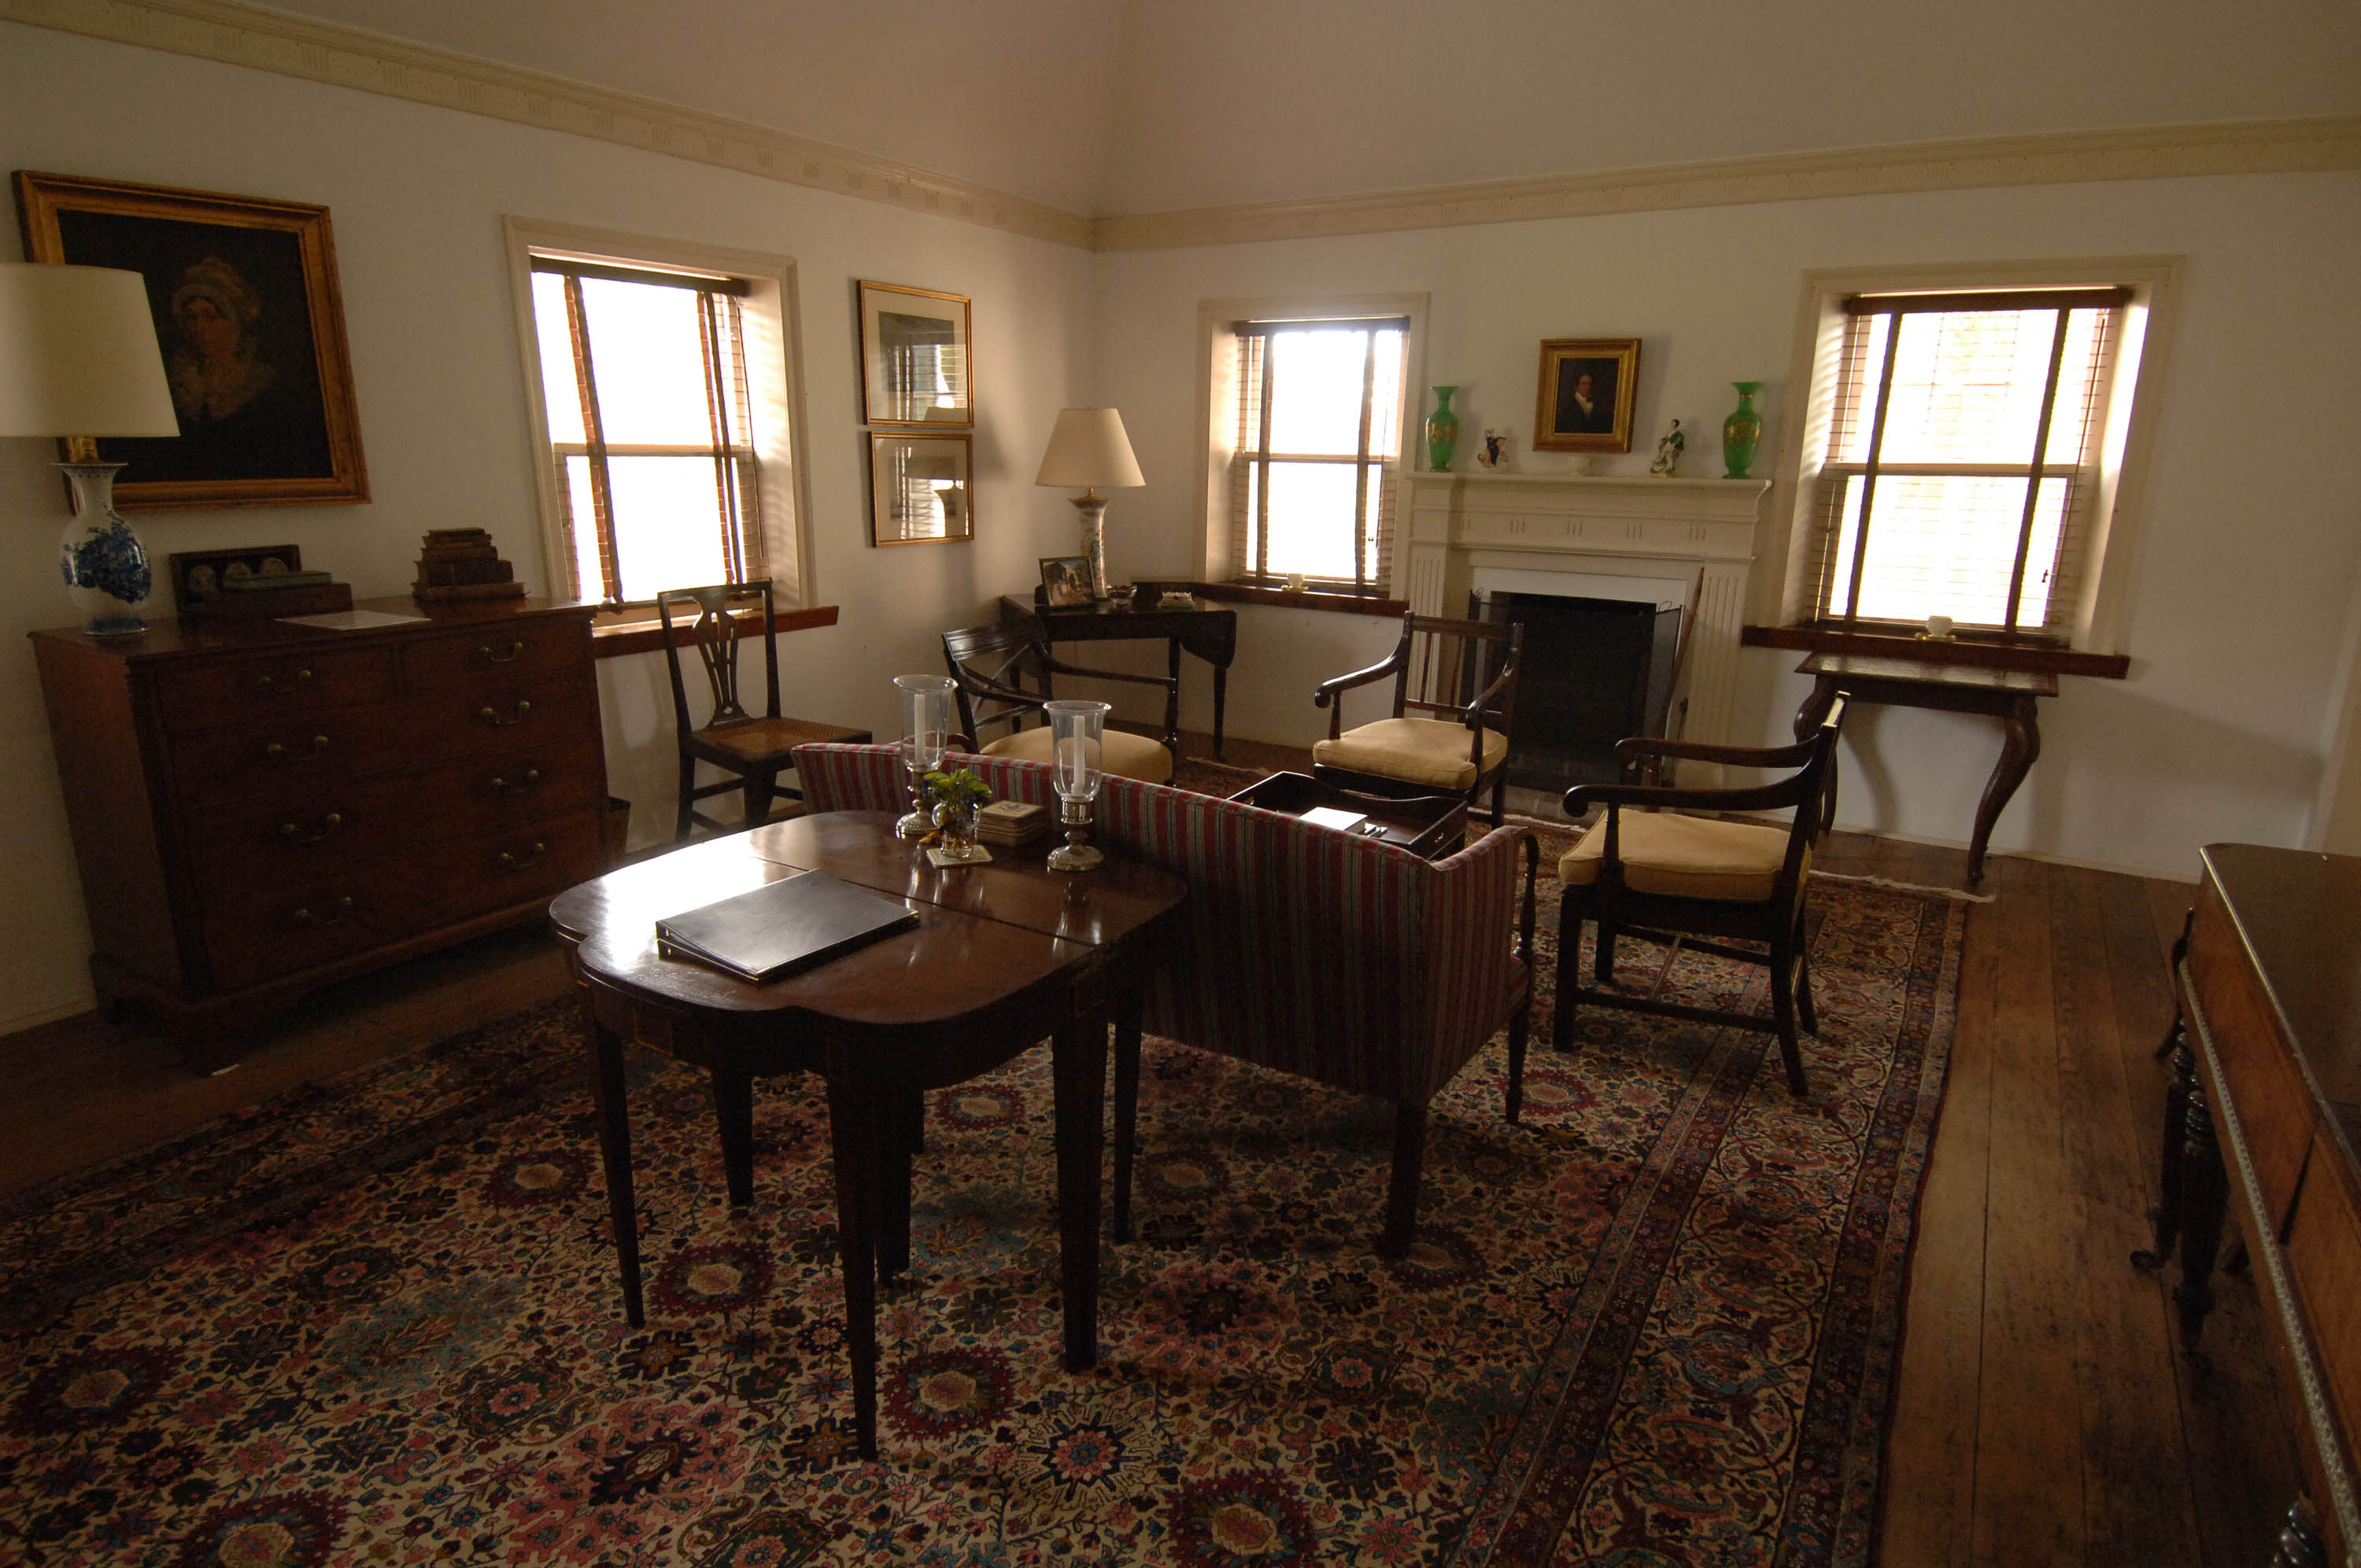 File WATERVILLE INTERIOR  PAGET PARISH  BERMUDA jpg   Wikimedia Commons File WATERVILLE INTERIOR  PAGET PARISH  BERMUDA jpg